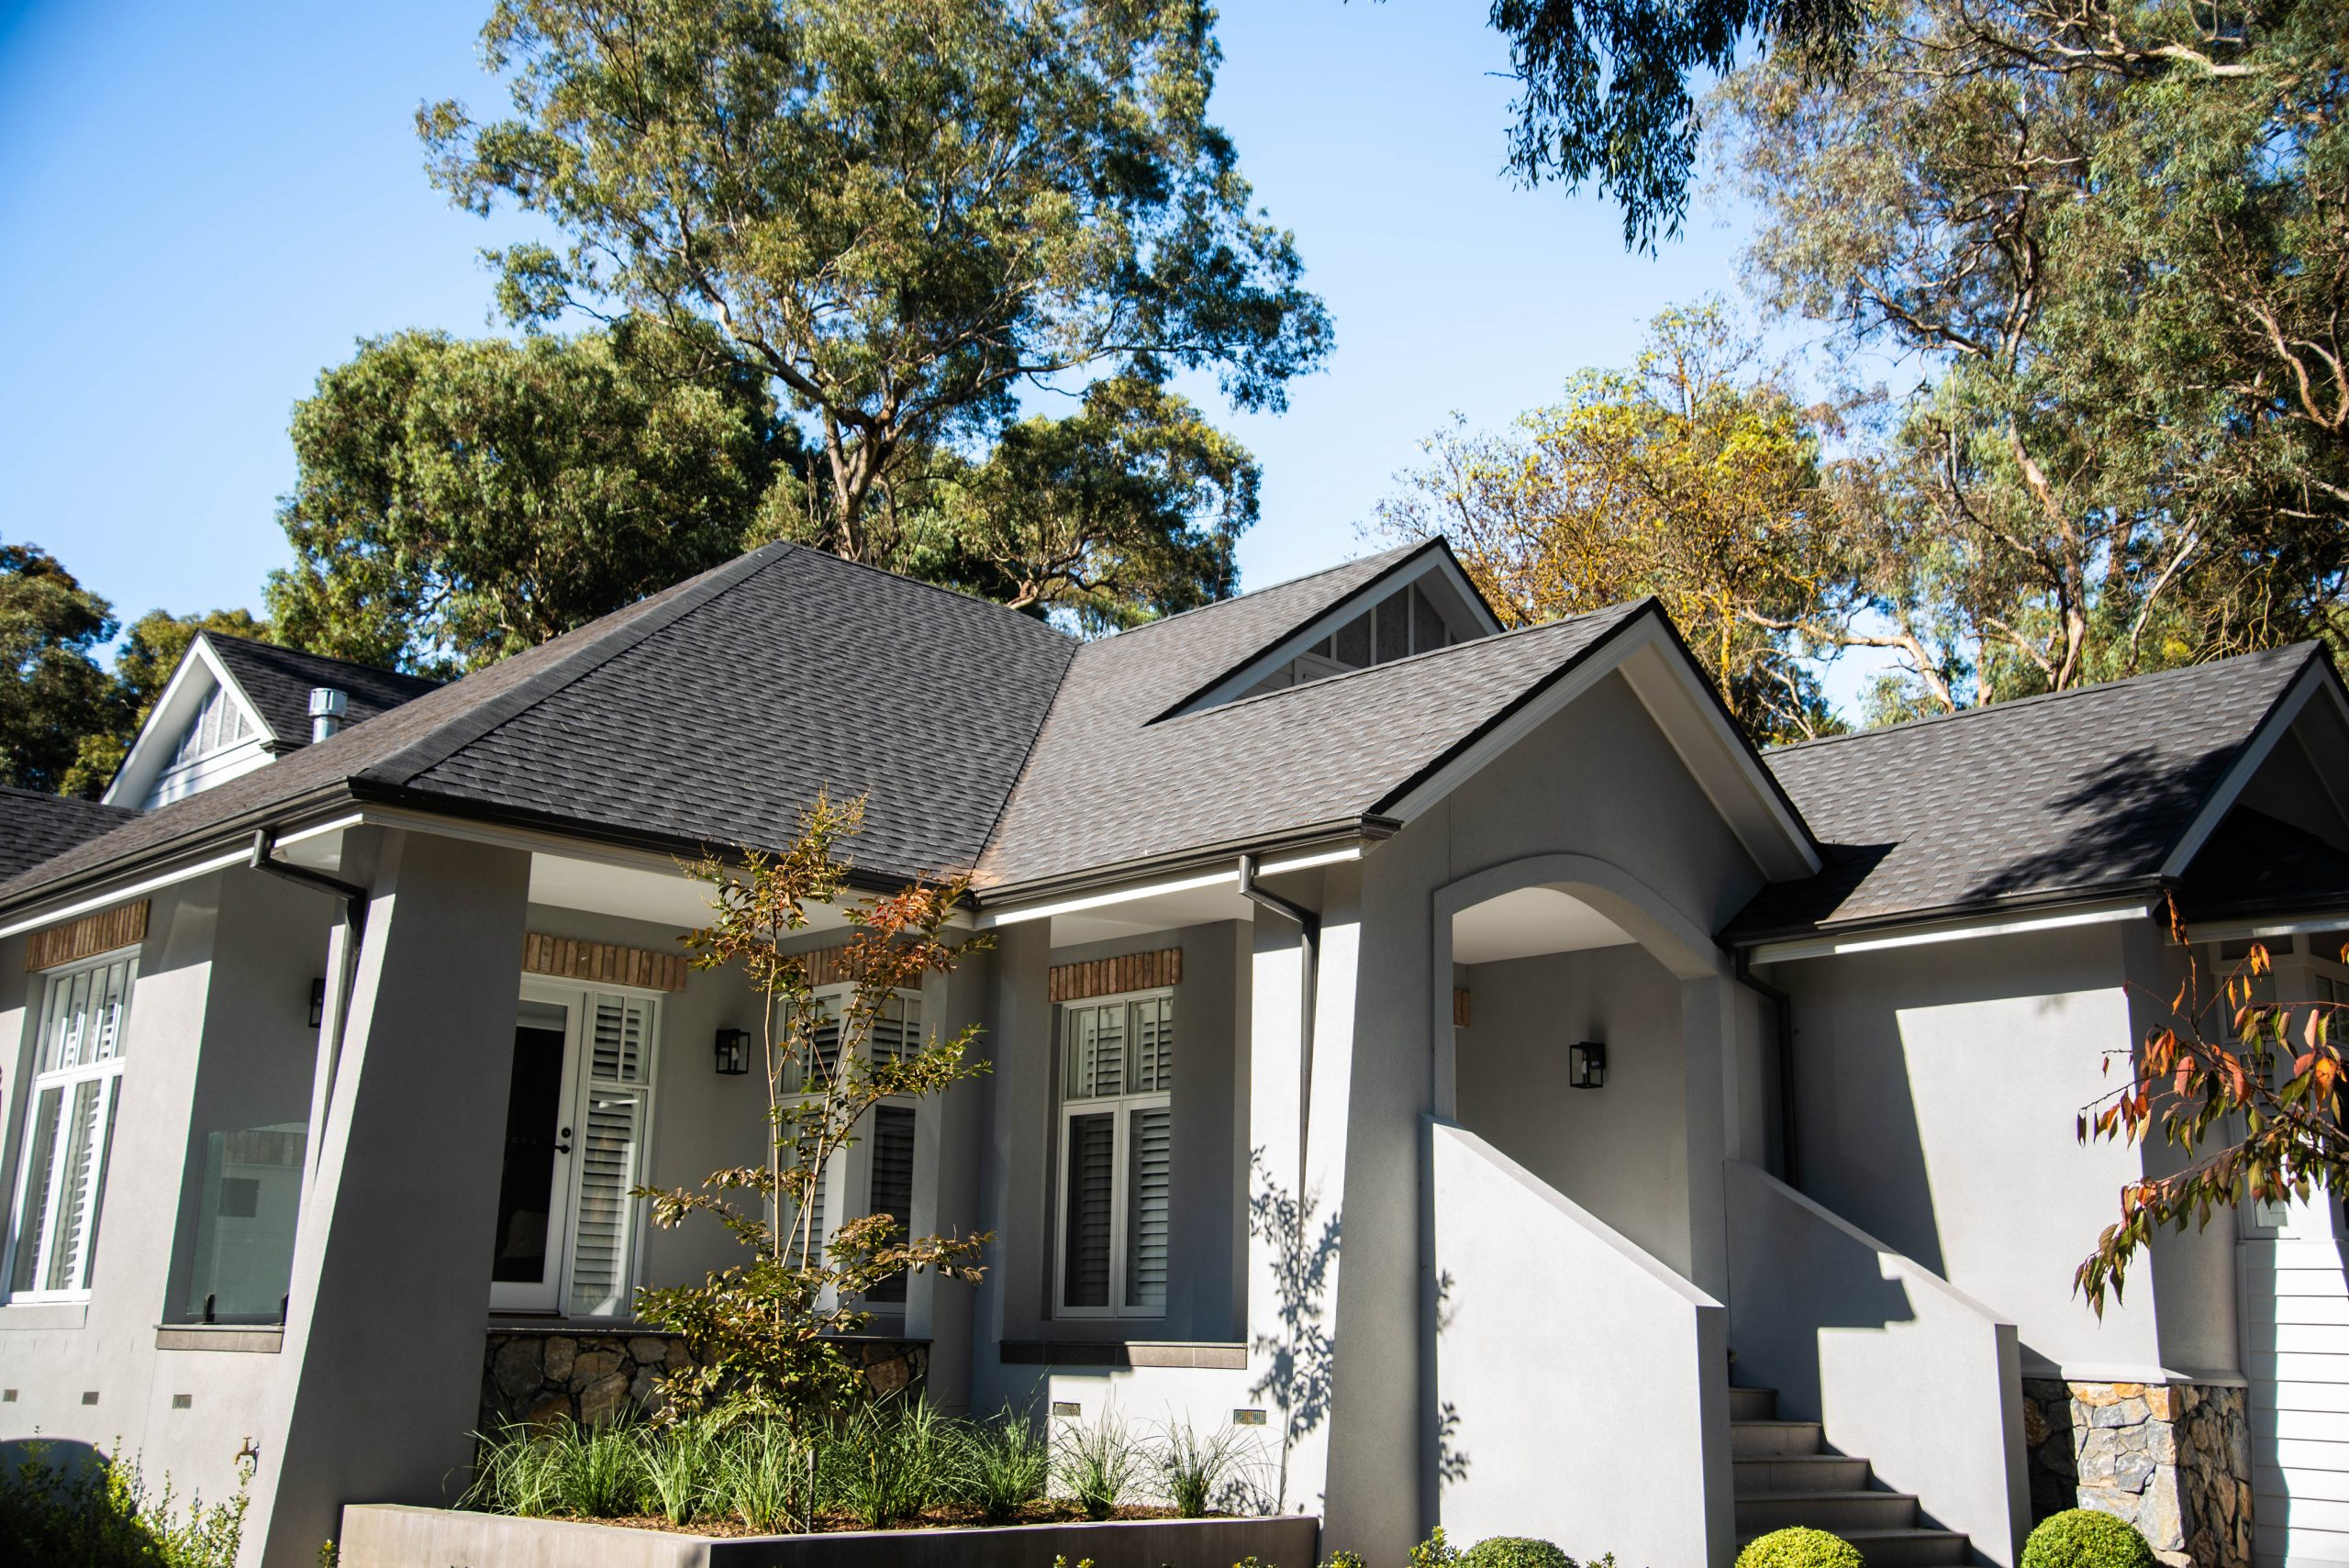 roofing shingles Melbourne